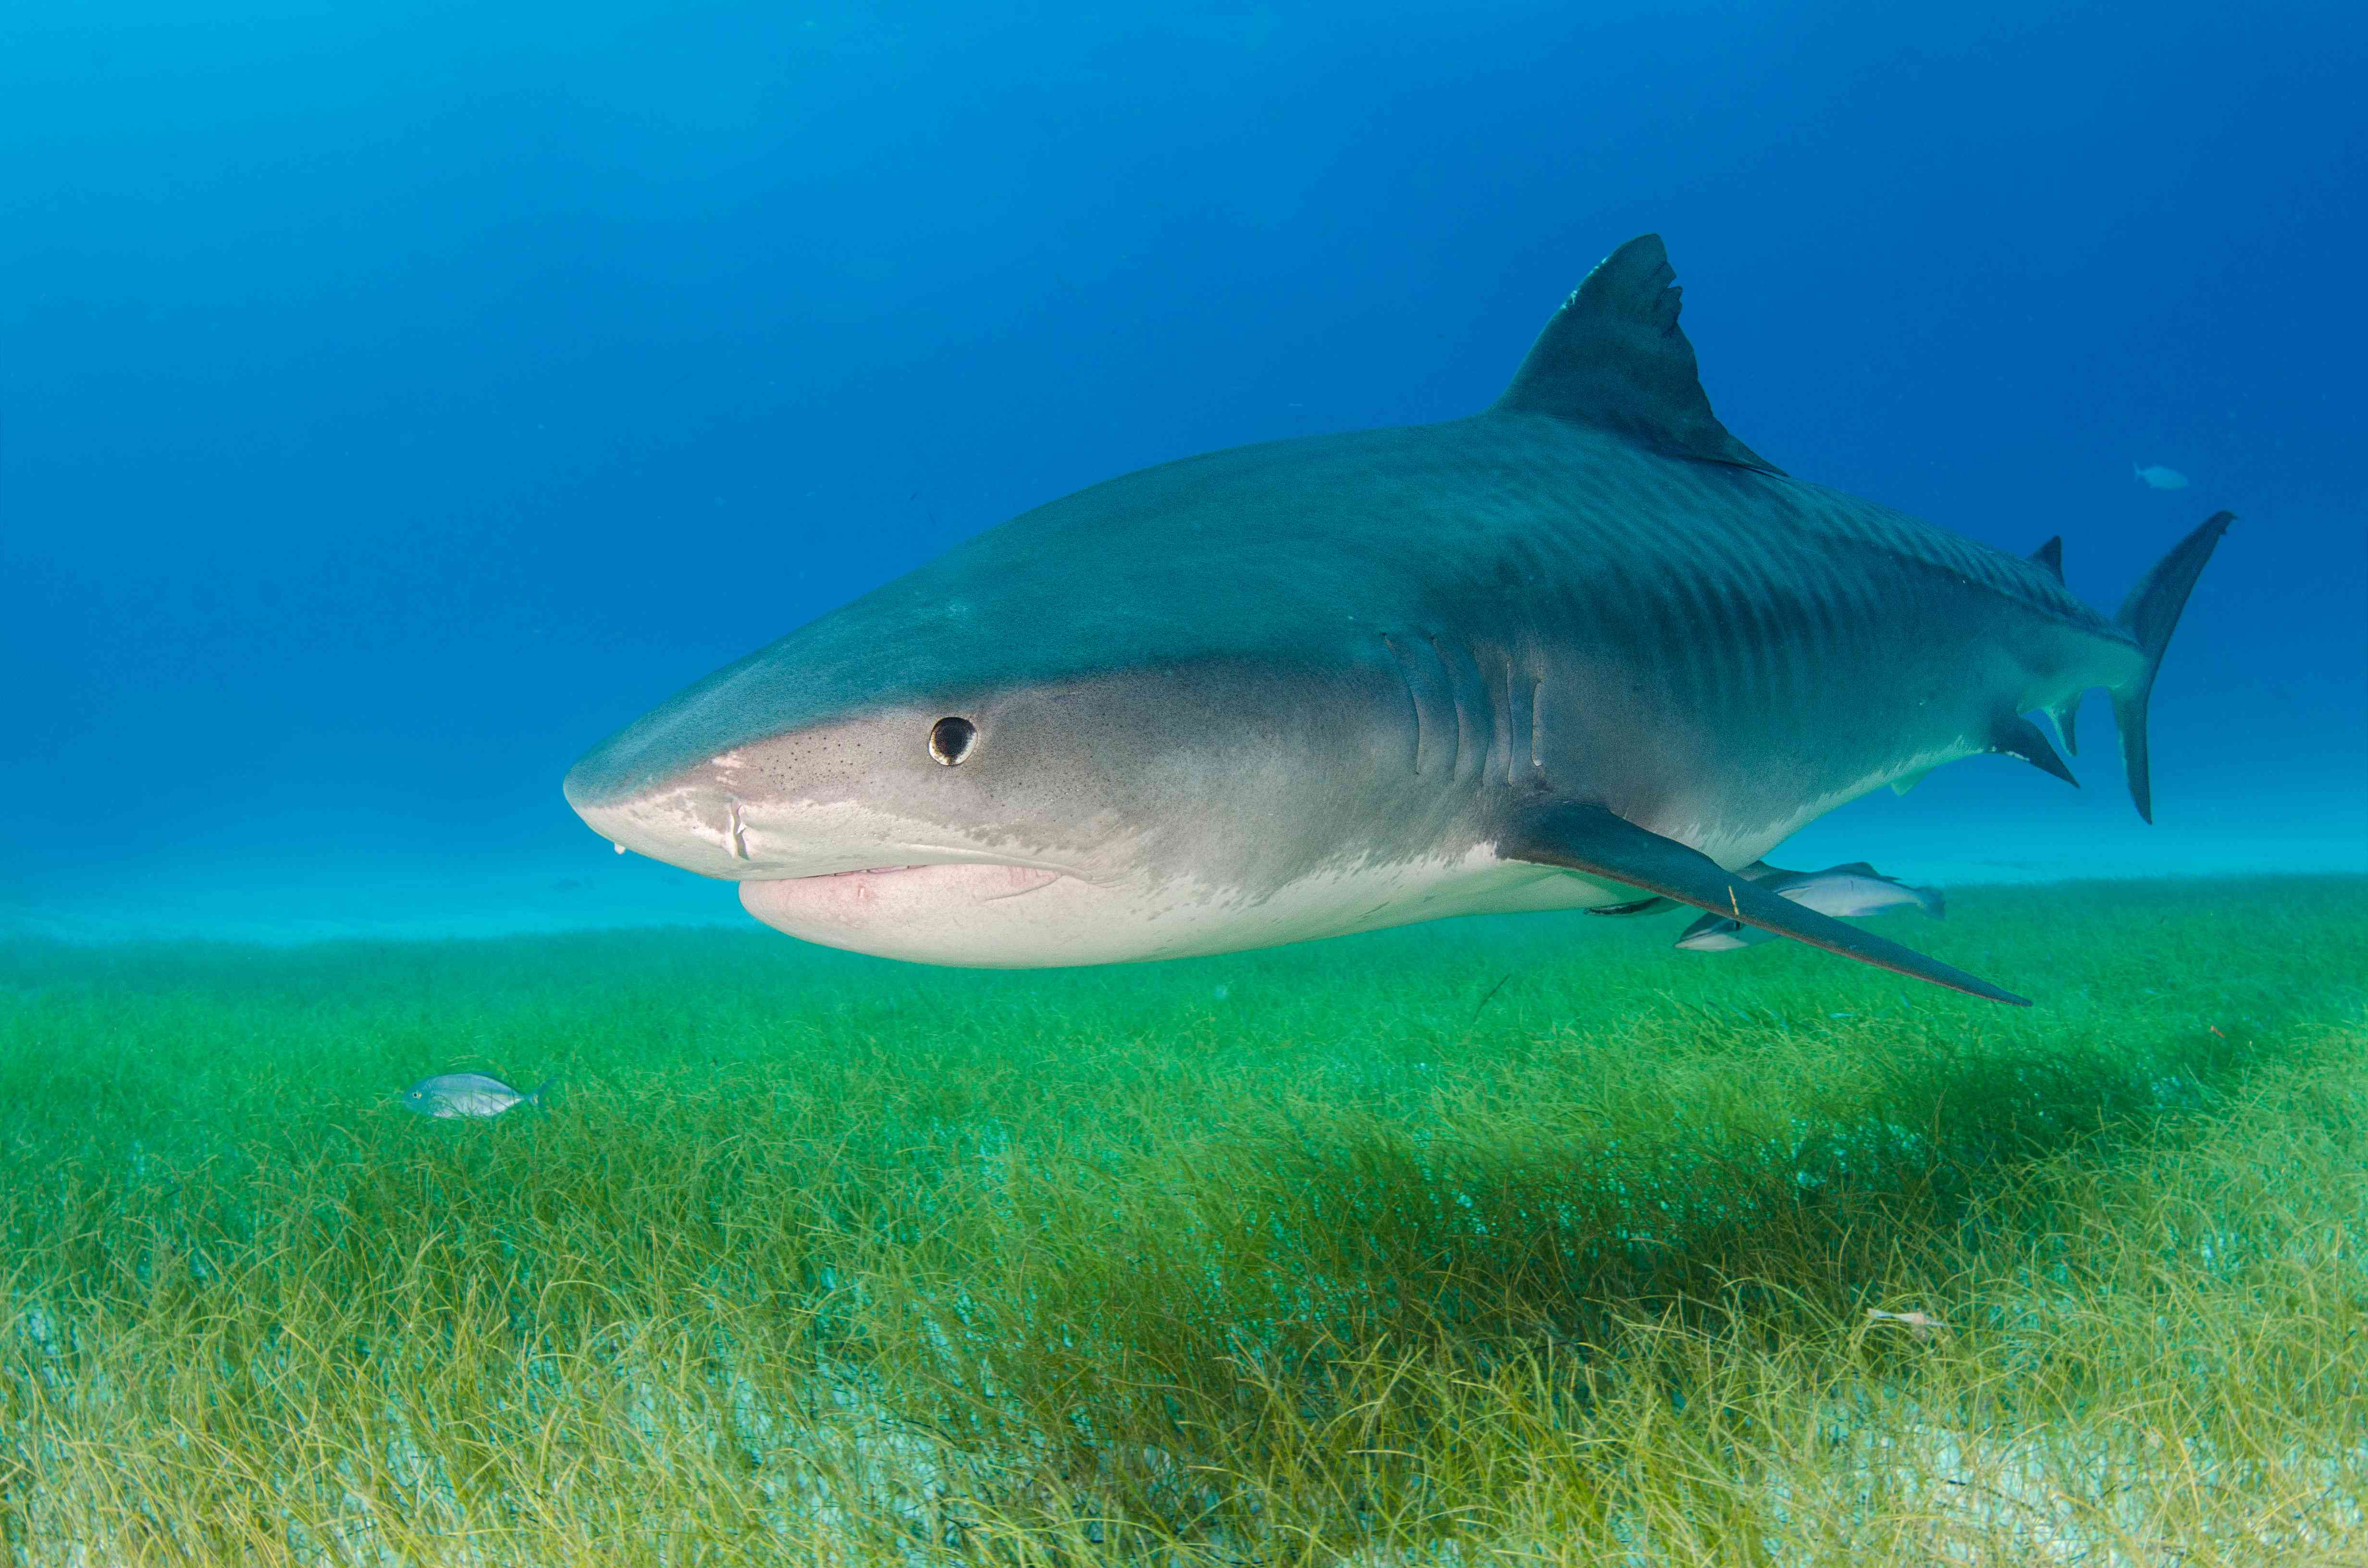 tiger shark and seagrass